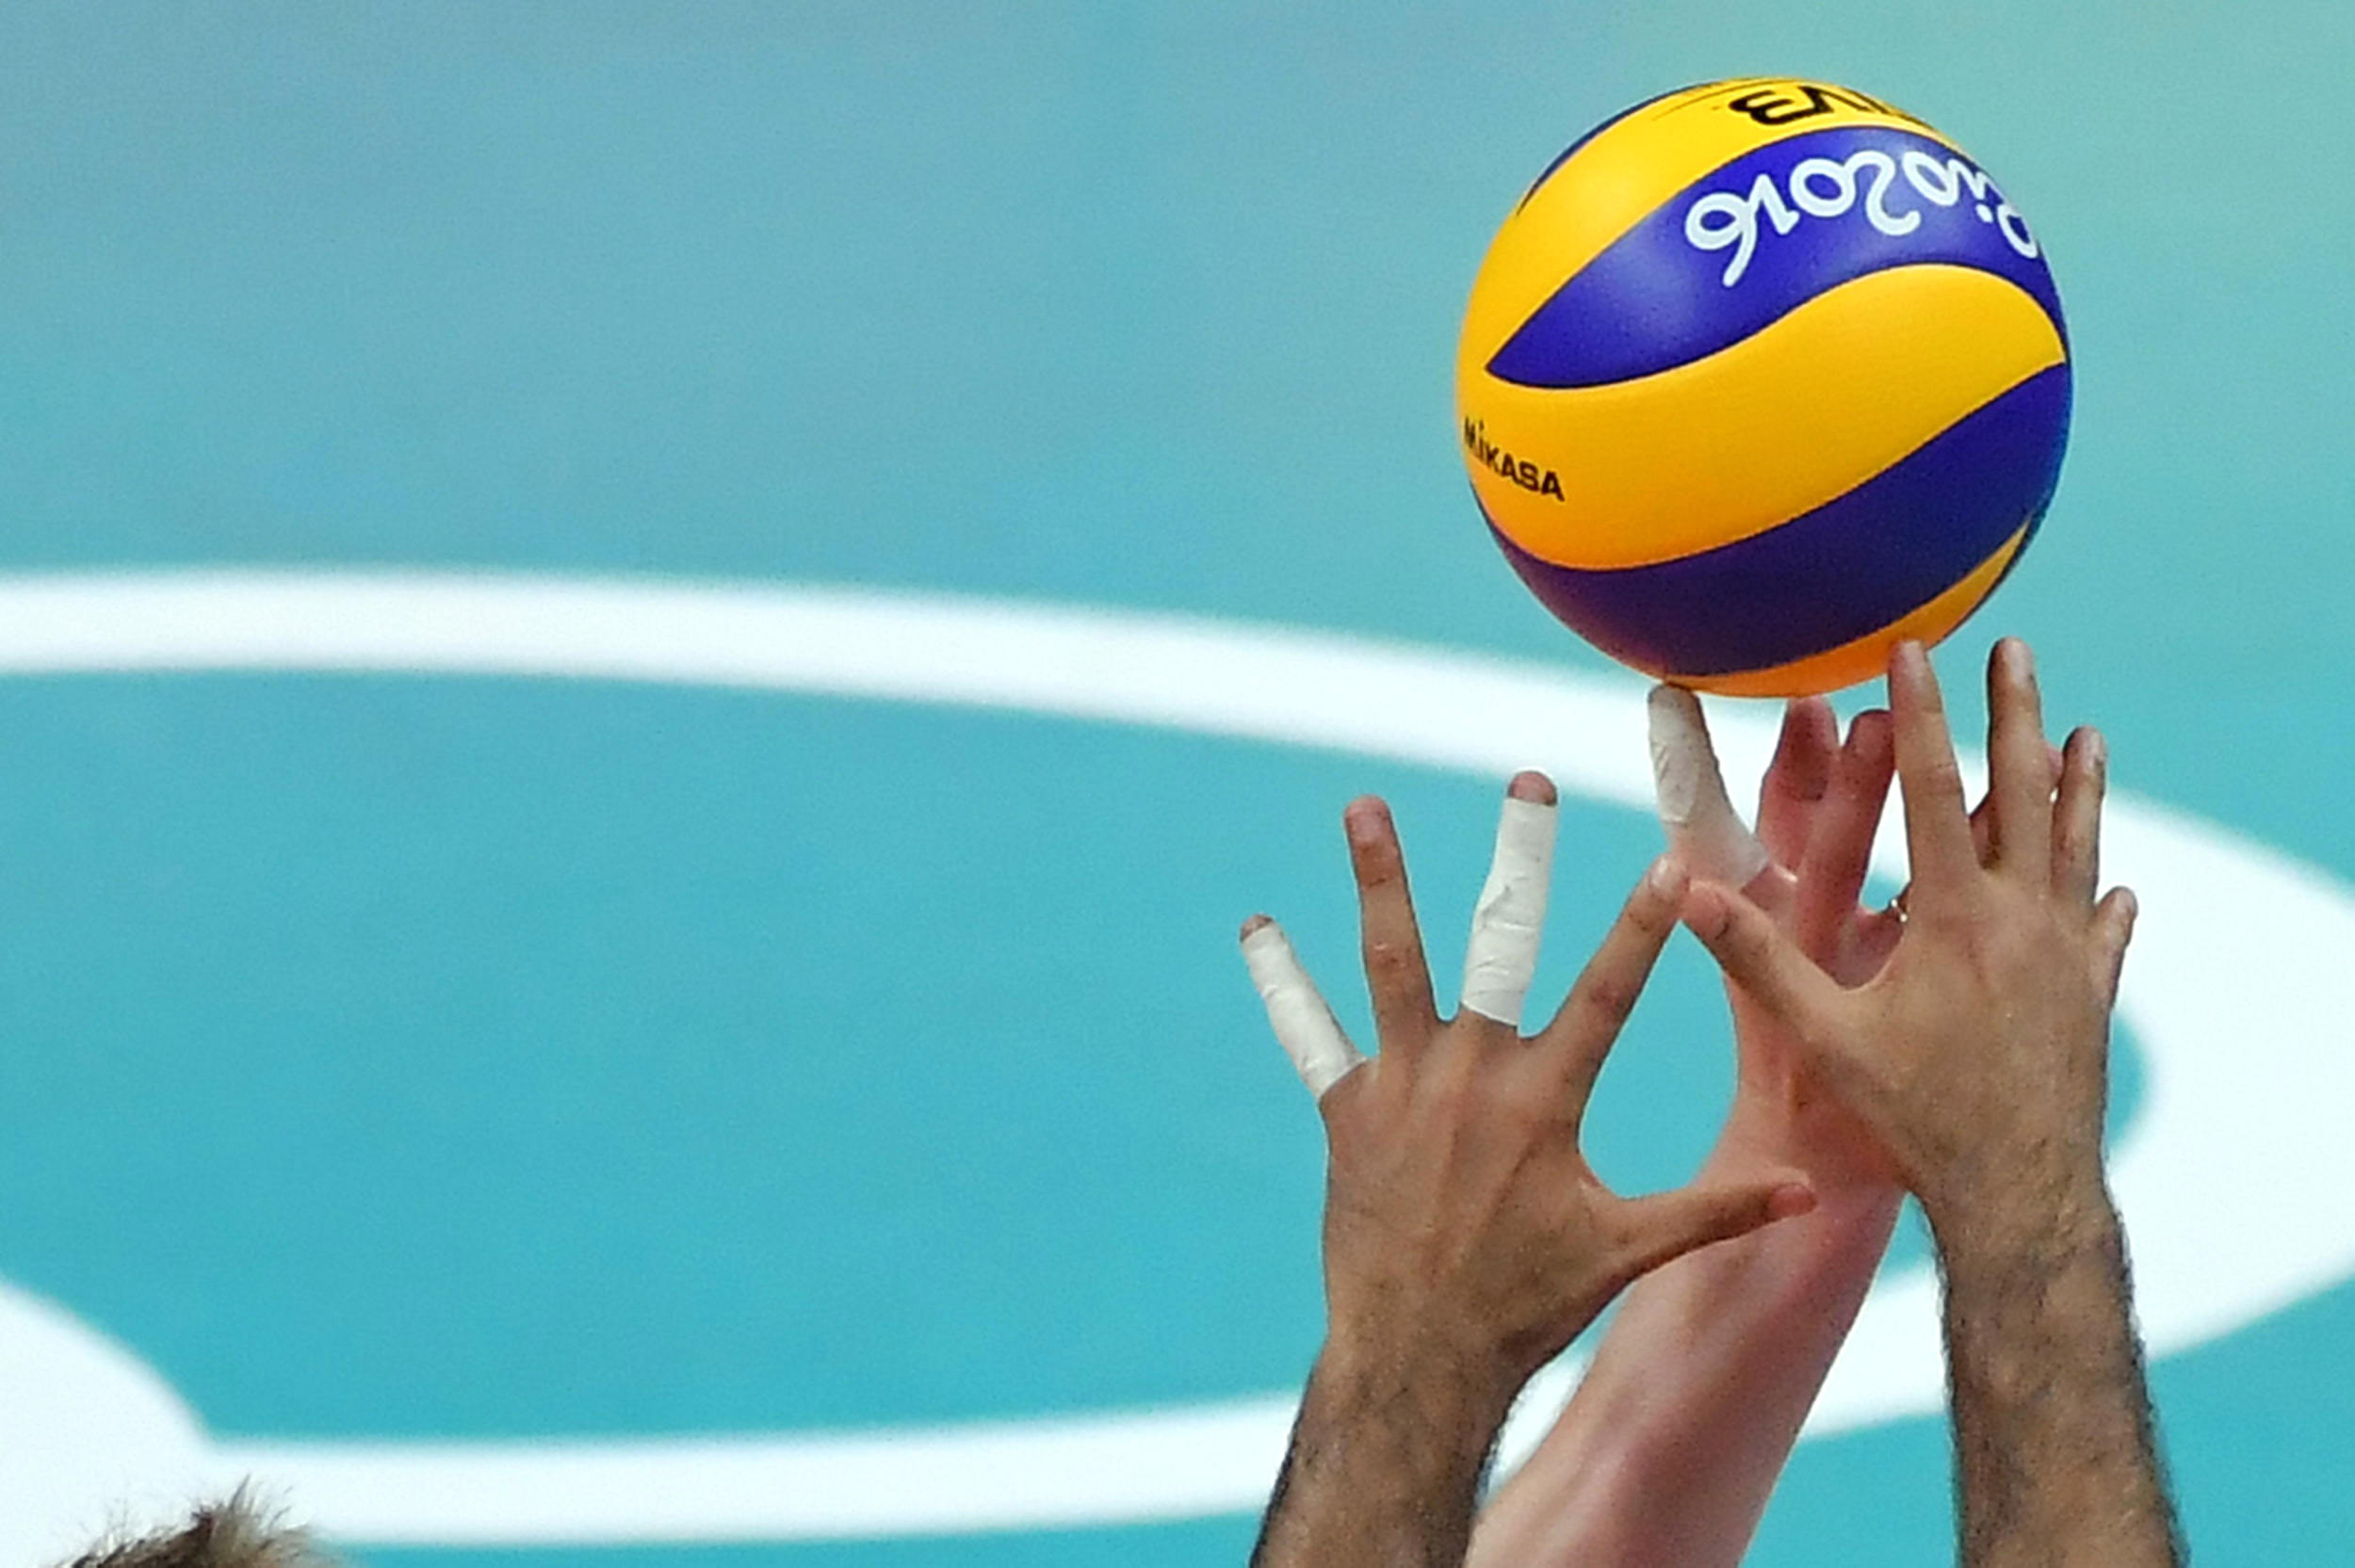 VolleyballinRIO2016.jpg